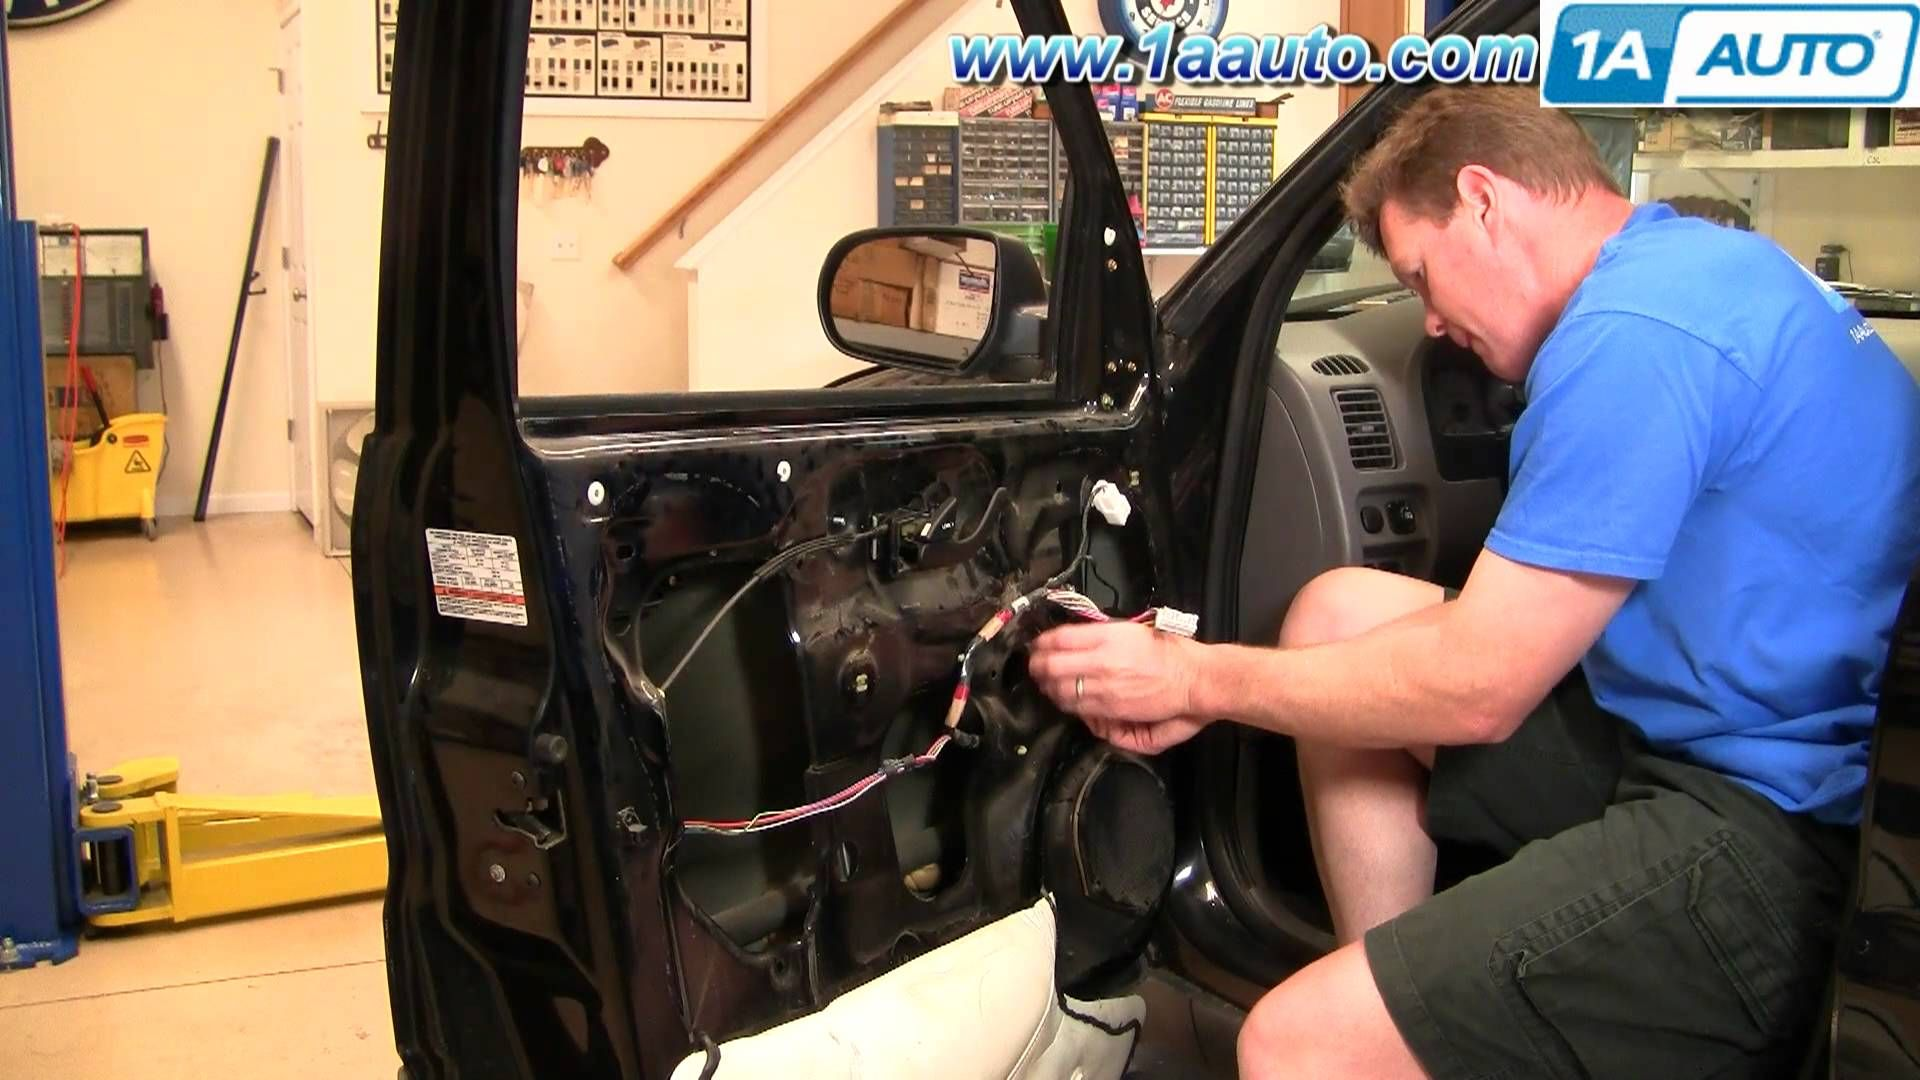 Cool How To Install Replace Front Power Window Regulator Ford Escape Mercury Mariner 01 07 1aauto Com Ford Escape Repair Videos Installation